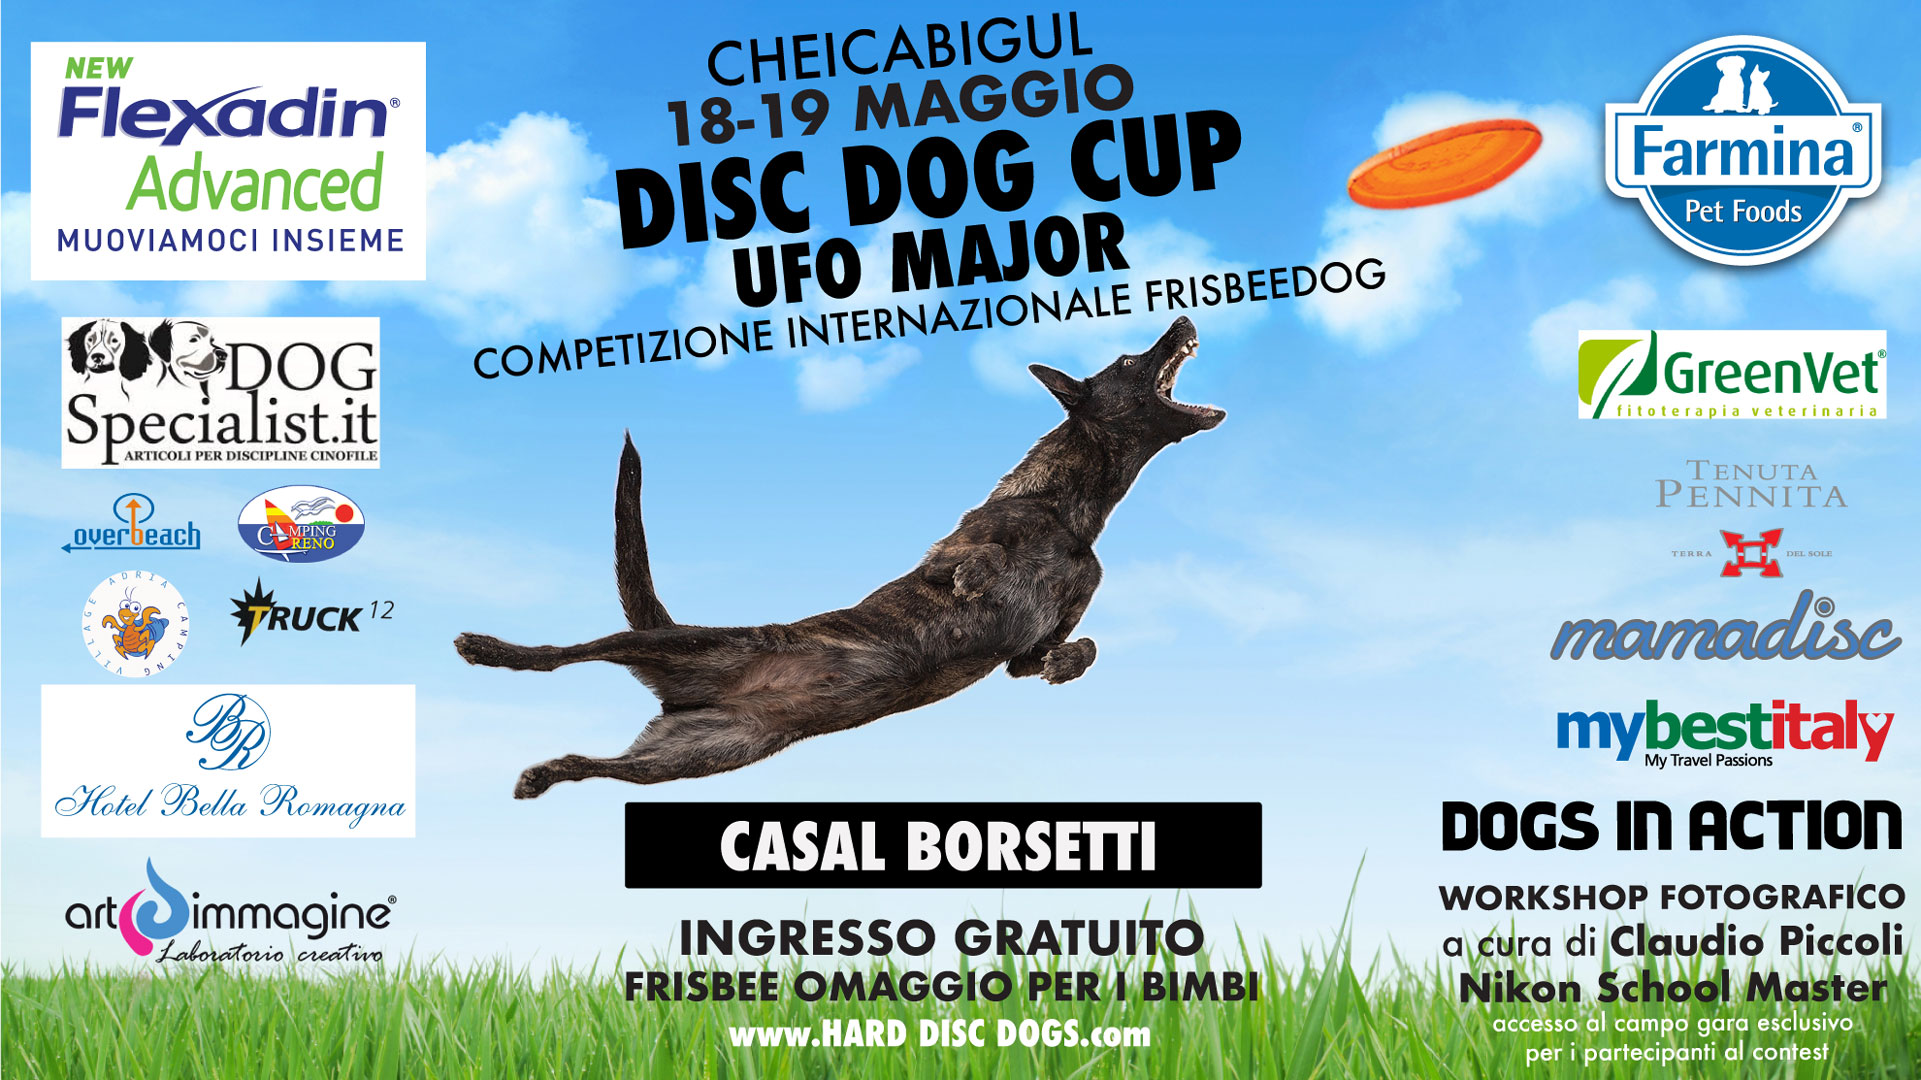 Cheicabigul Disc Dog Cup